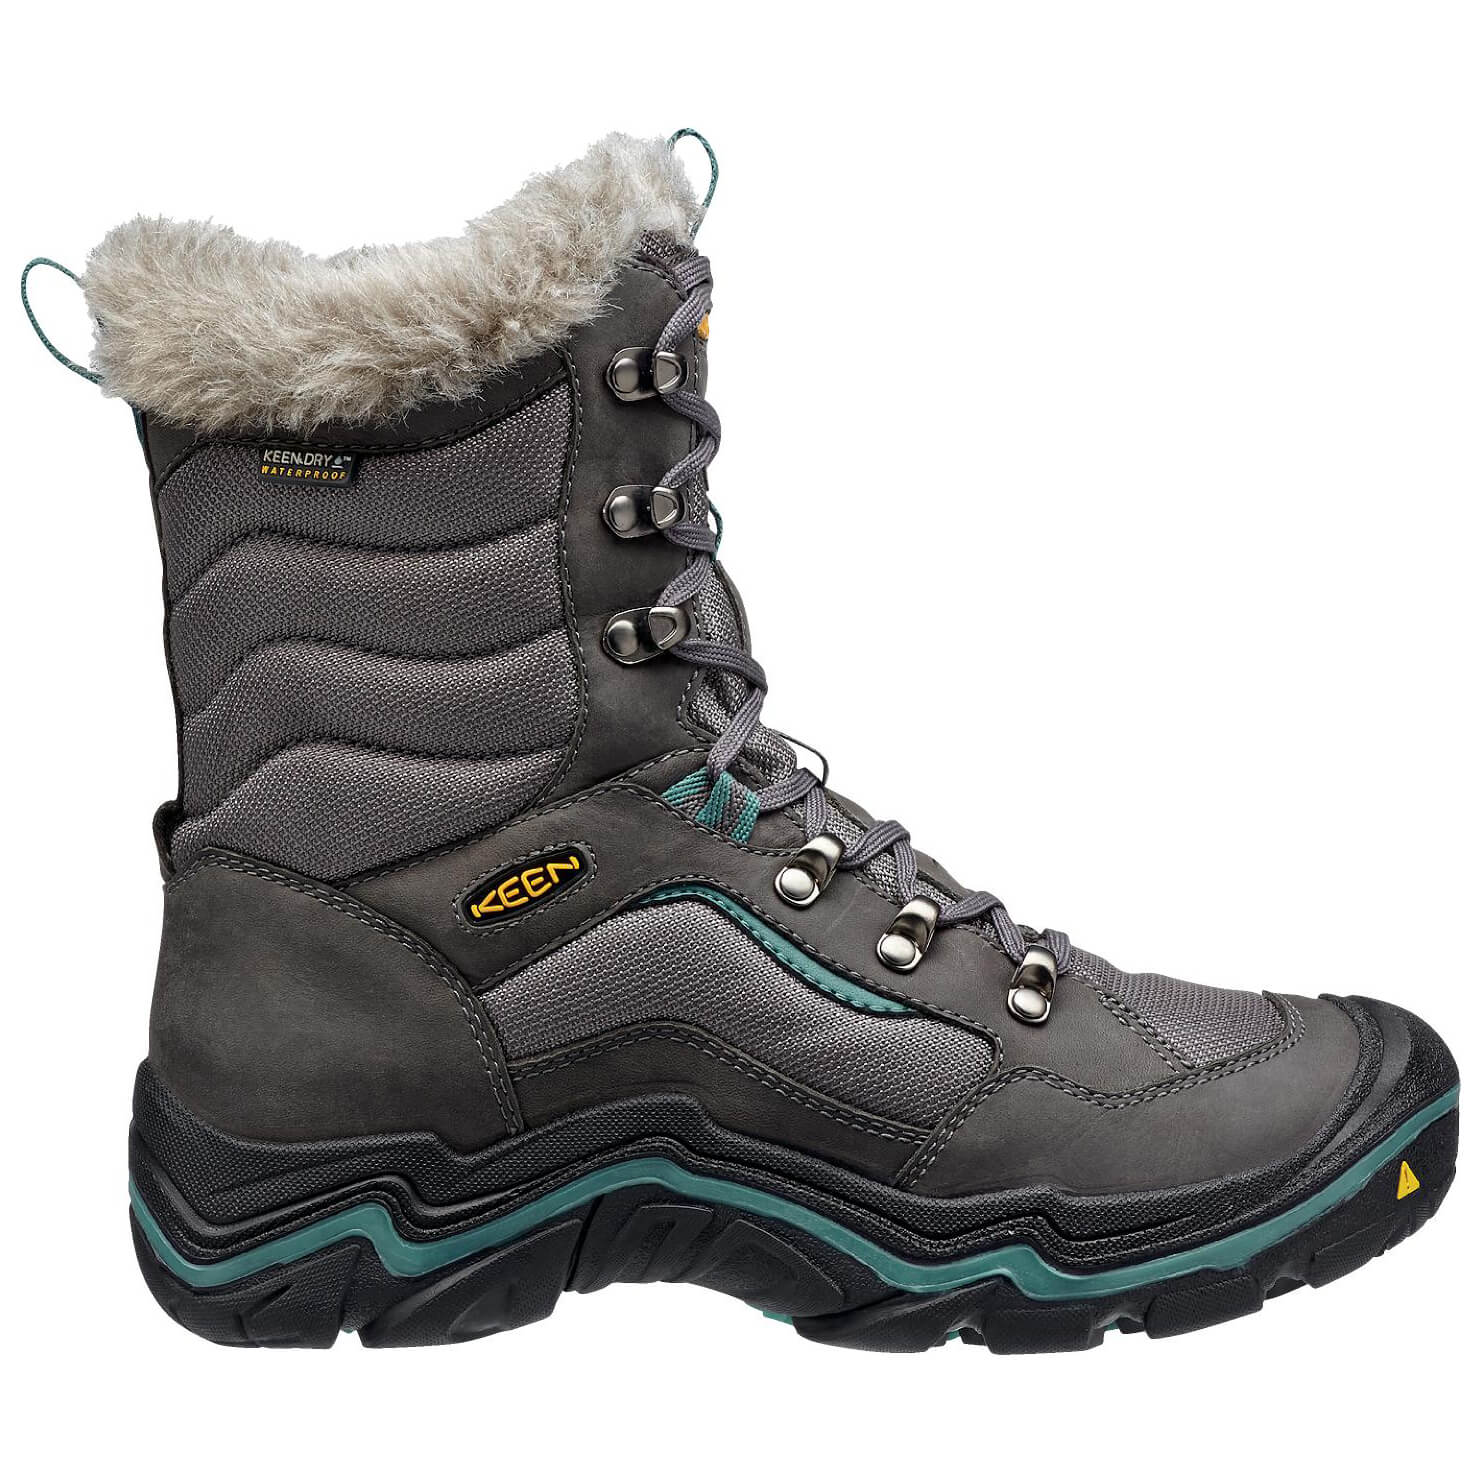 Keen Boots Outlet